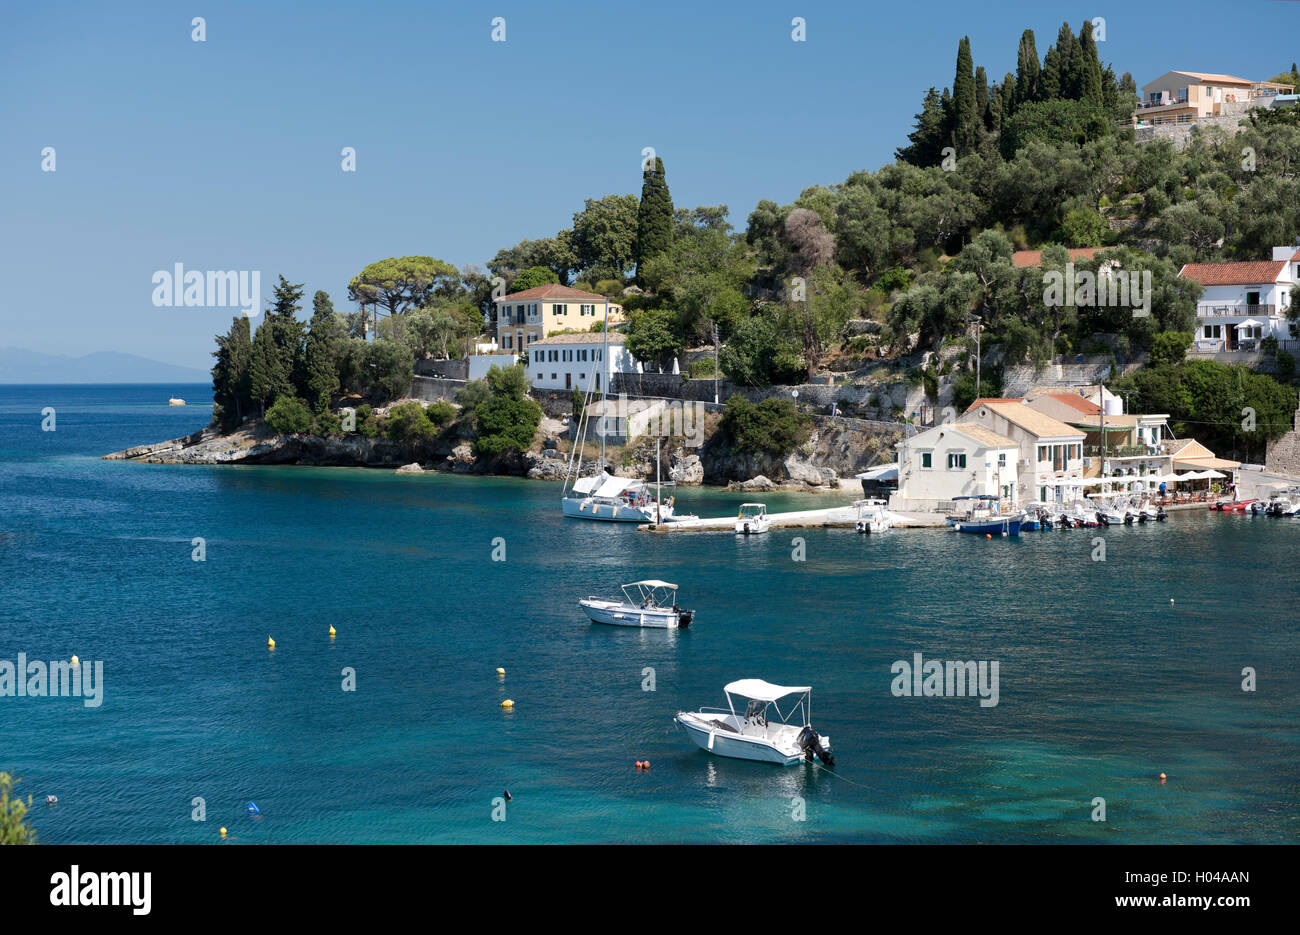 The picturesque harbour of Loggos on Paxos, The Ionian Islands, The Greek Islands, Greece, Europe - Stock Image